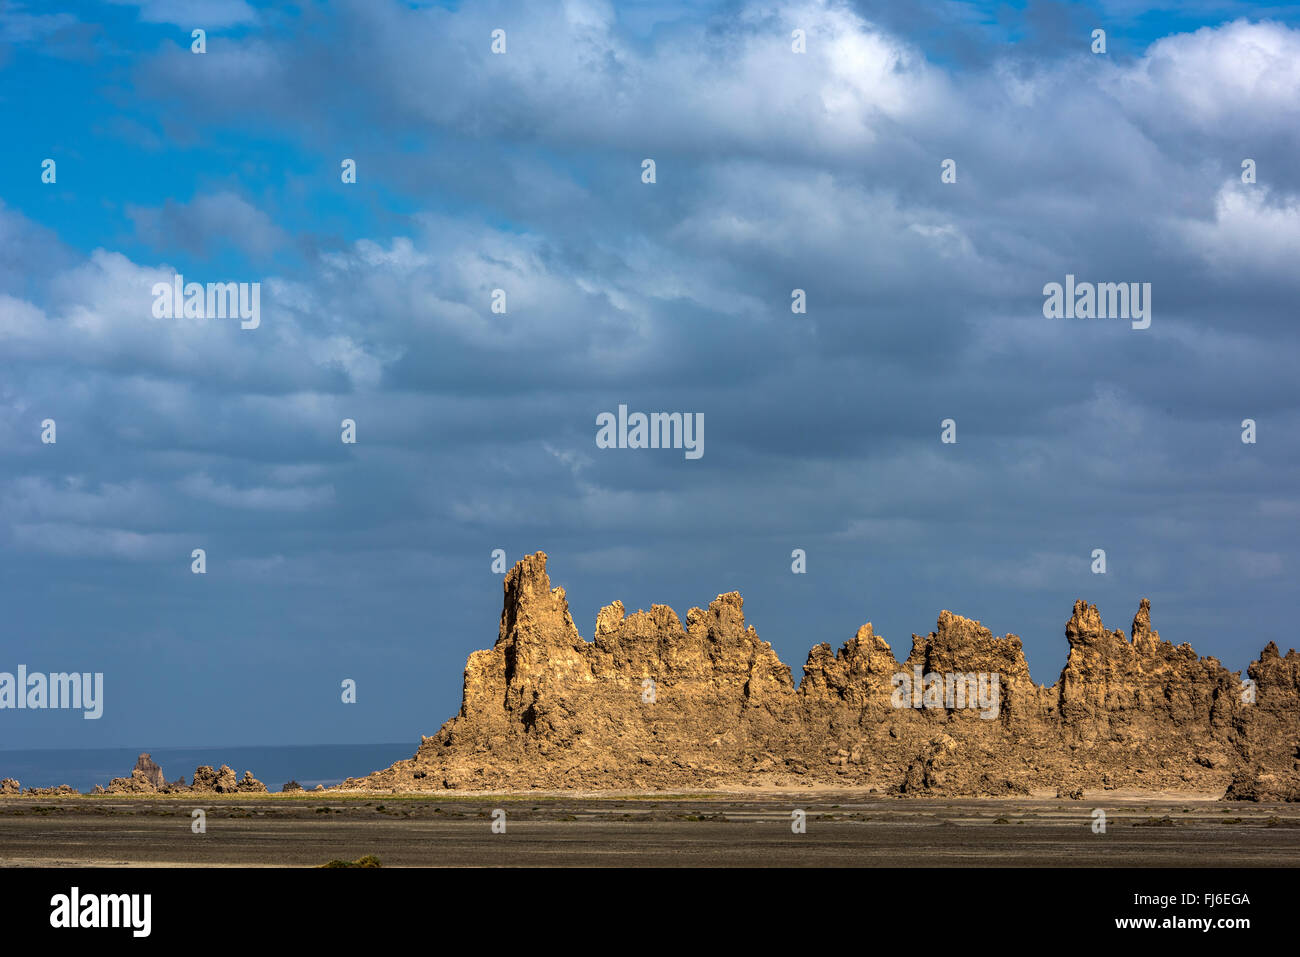 Rock Formations at dawn Lake Abbe, Djibouti, Africa - Stock Image